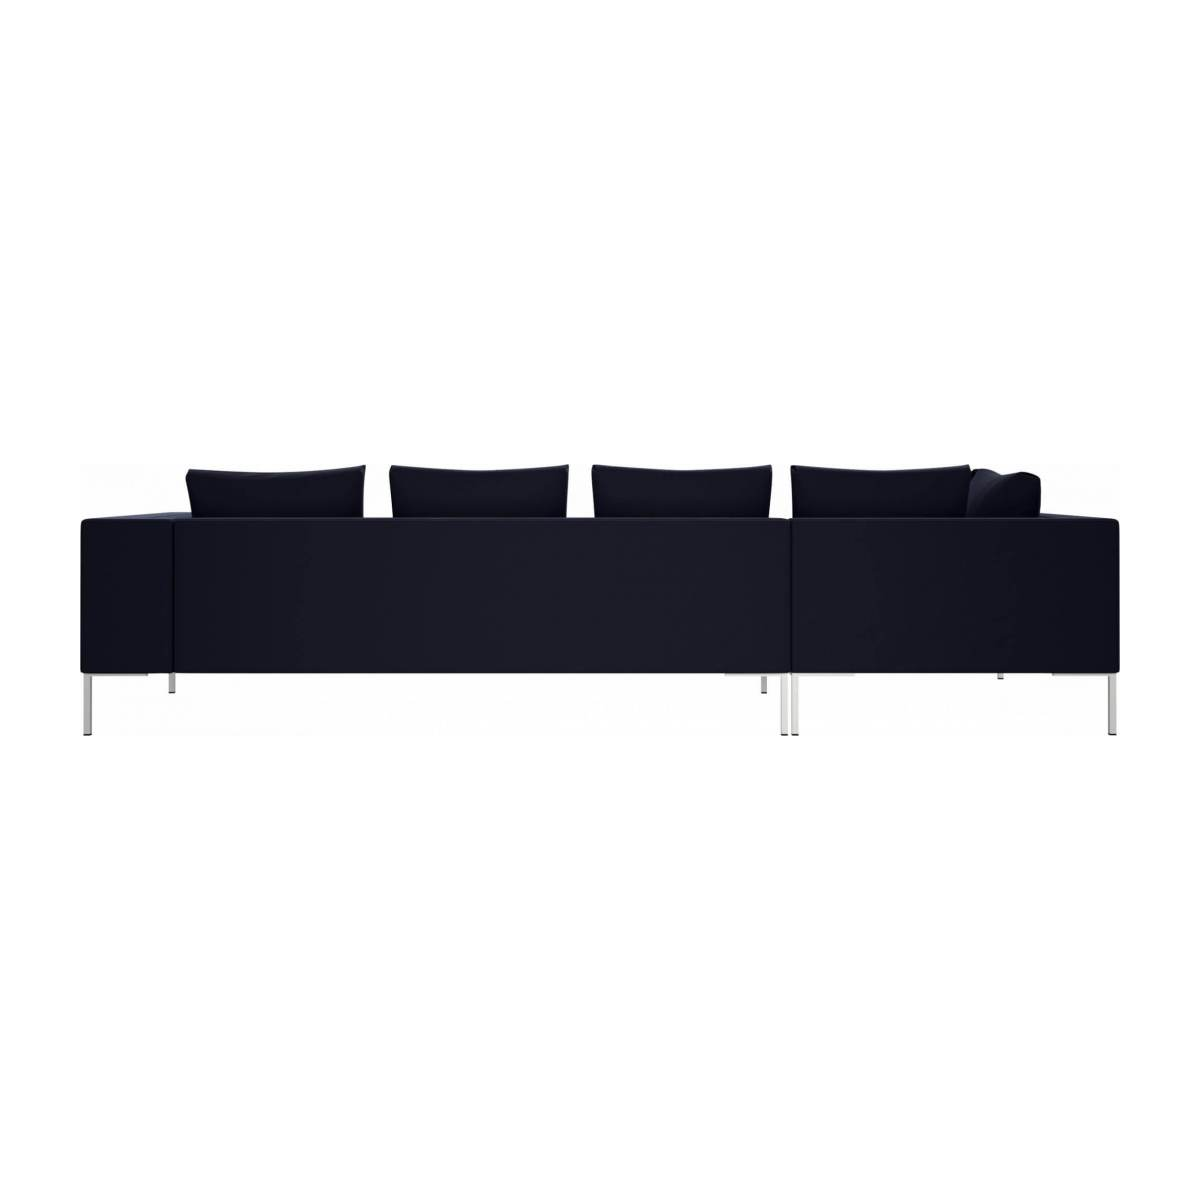 3 seater sofa with chaise longue on the left in Super Velvet fabric, dark blue  n°3